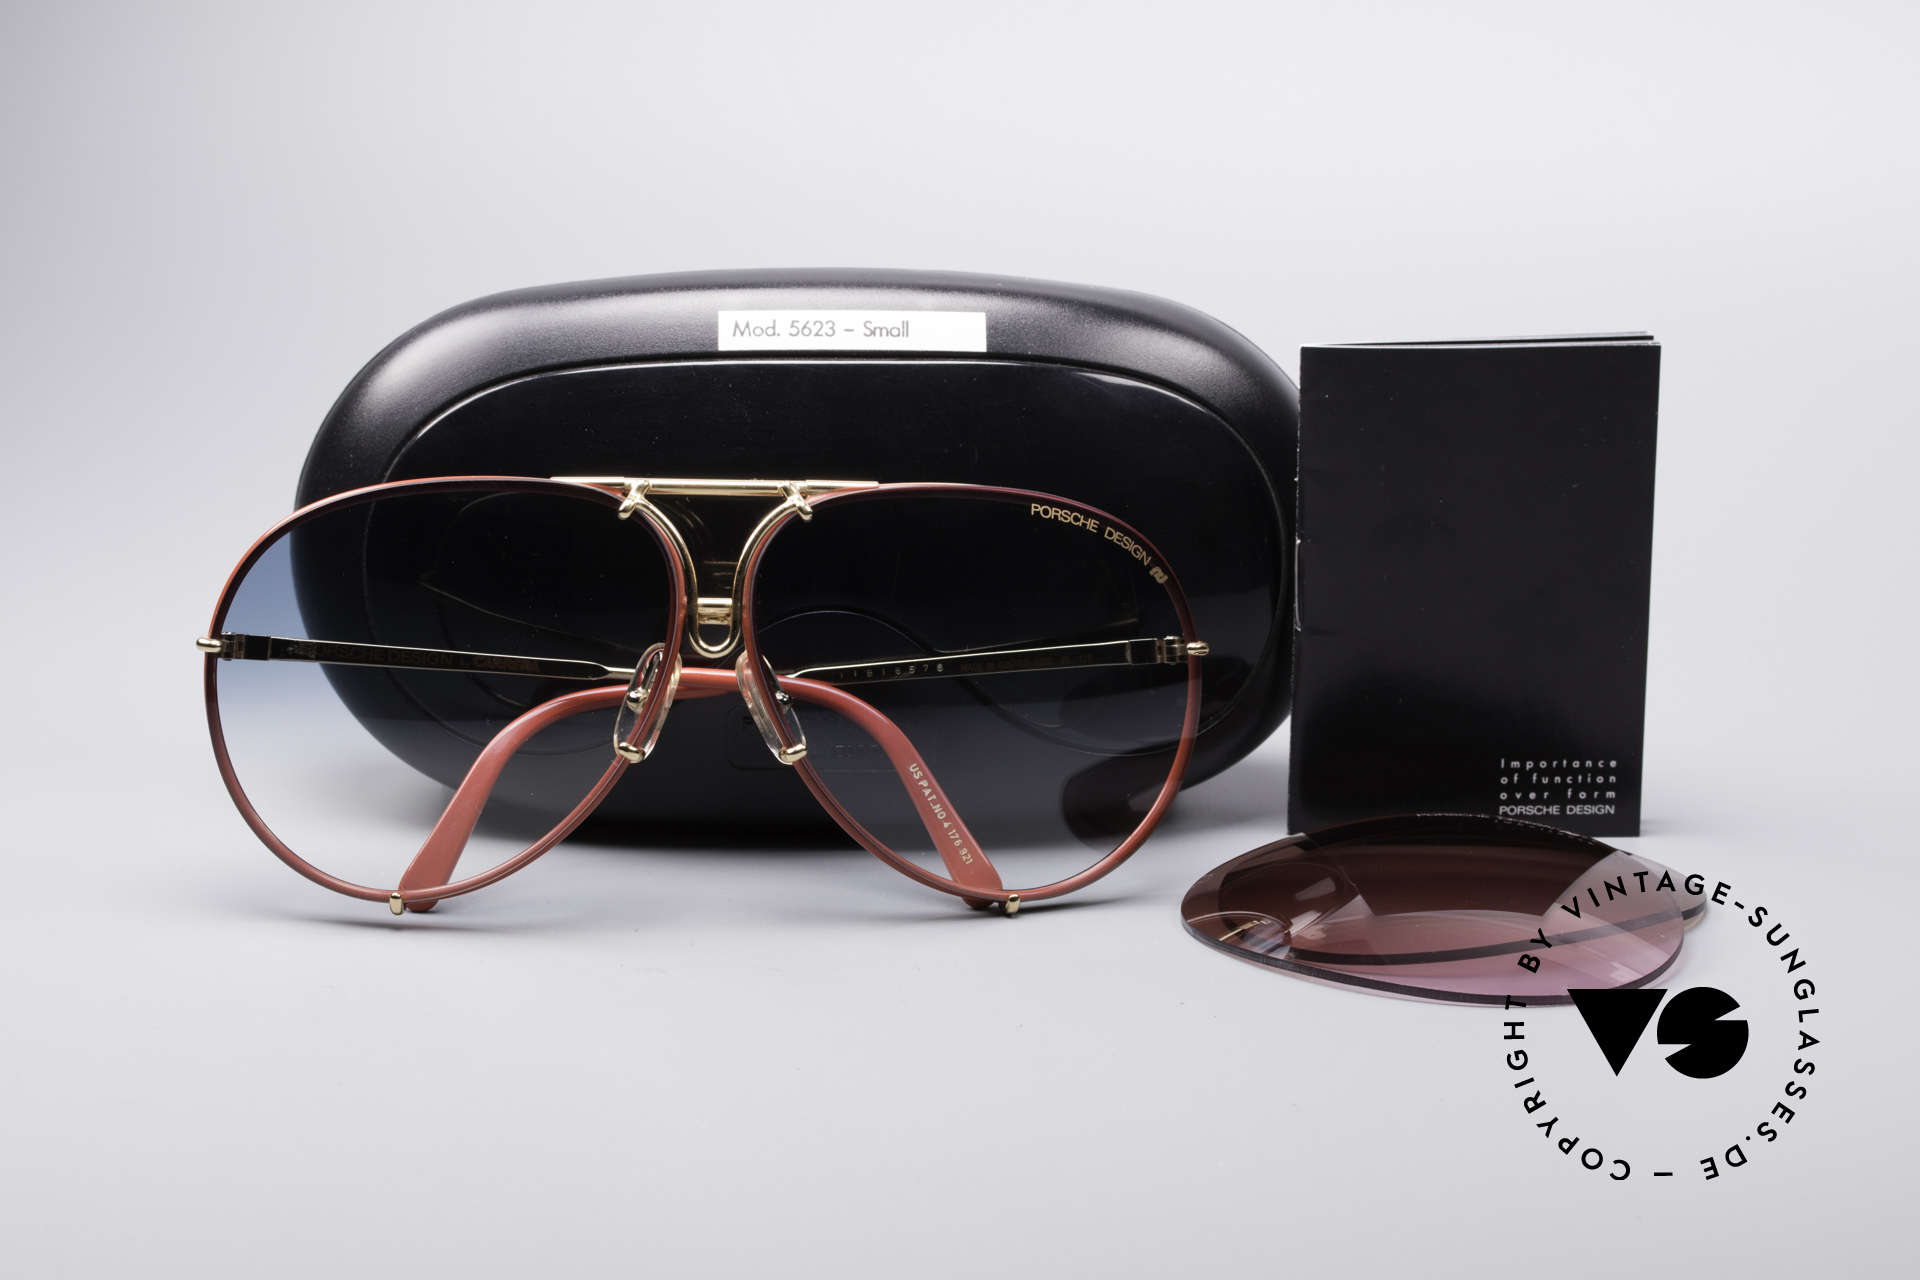 Porsche 5623 Limited Special Edition, interchangeable lenses (red-gradient & blue-gradient), Made for Women